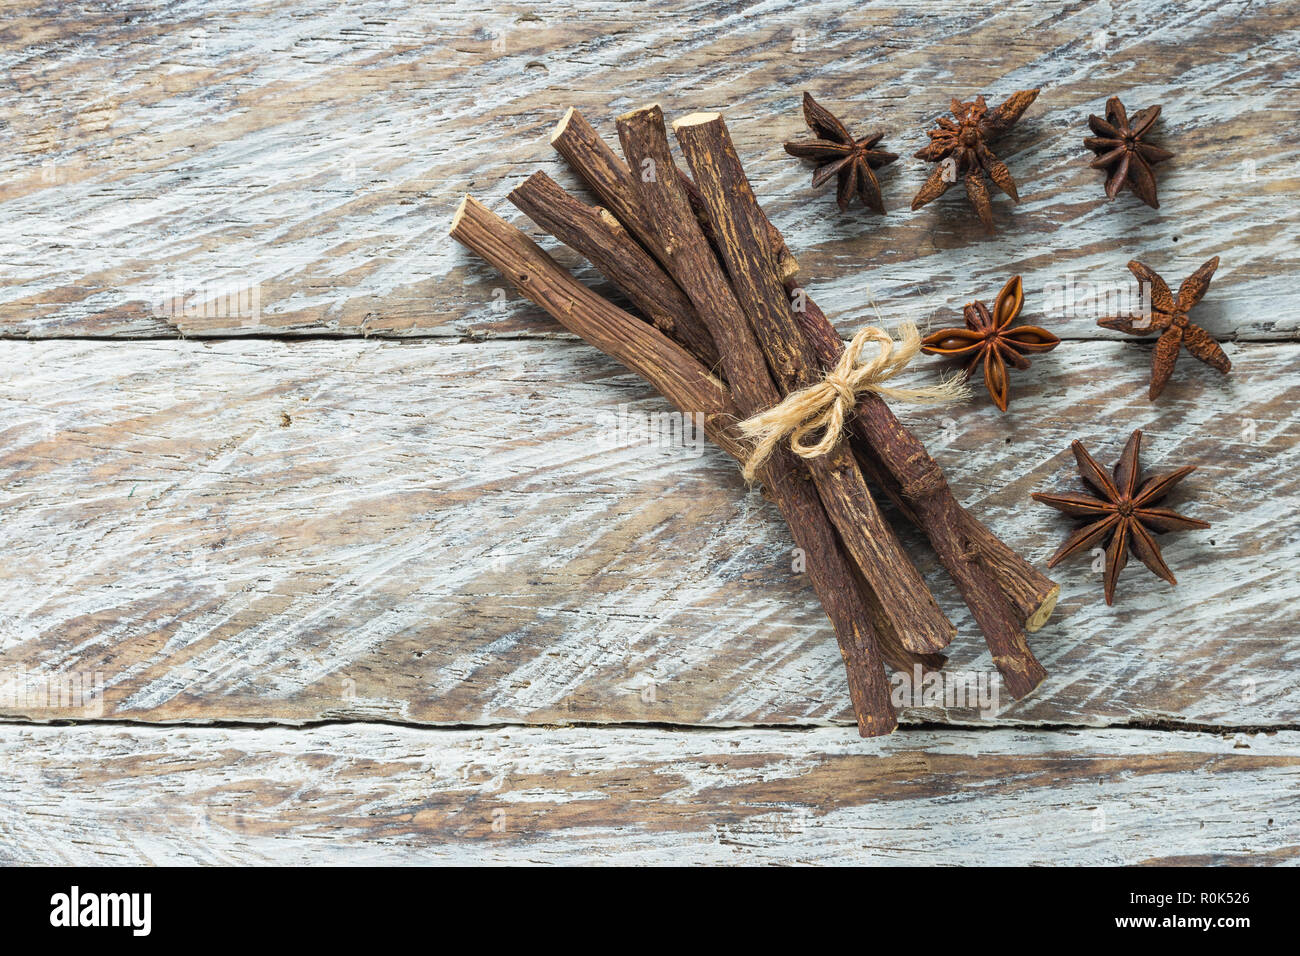 licorice root and anise on the table - Glycyrrhiza glabra. Stock Photo